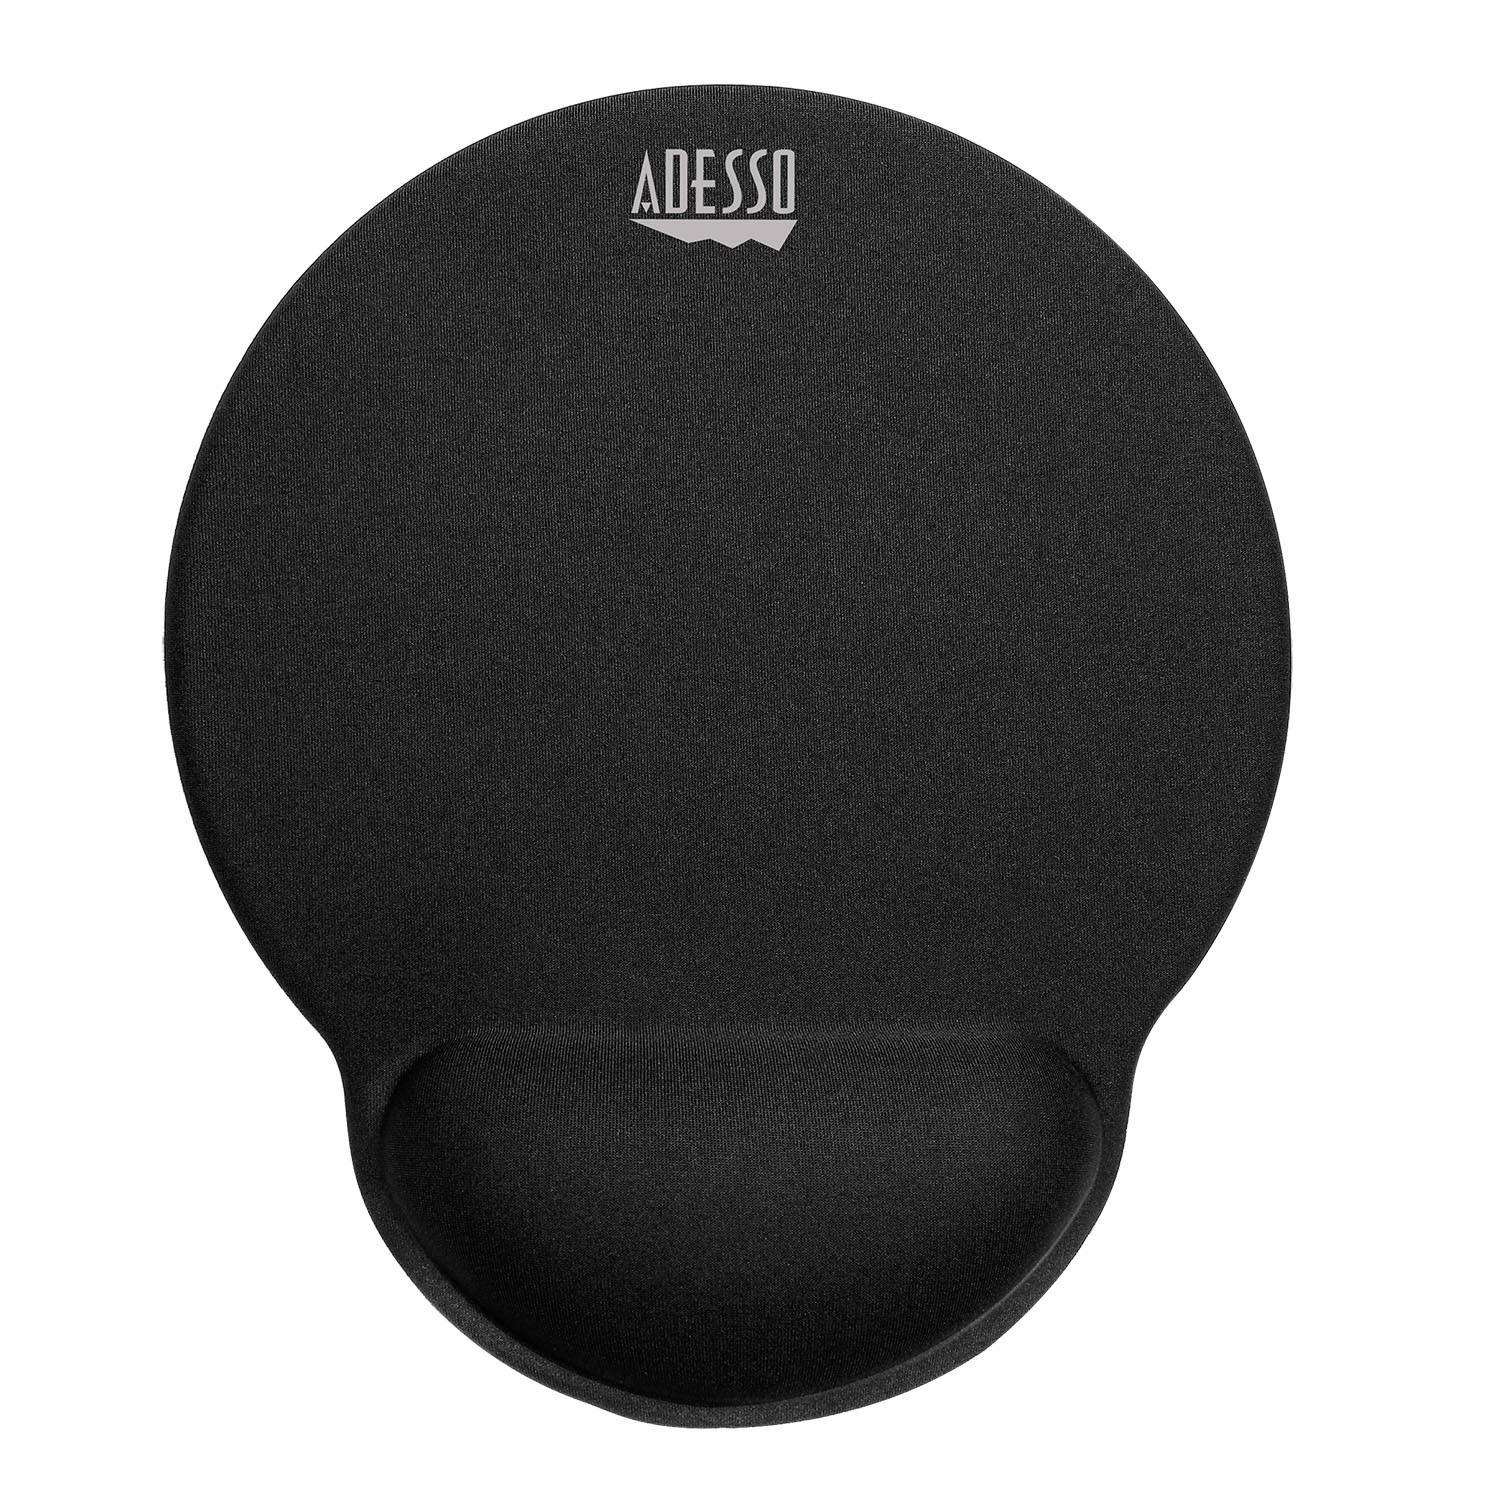 Adesso TruForm P200 - Memory Foam Mouse Pad with Wrist Rest